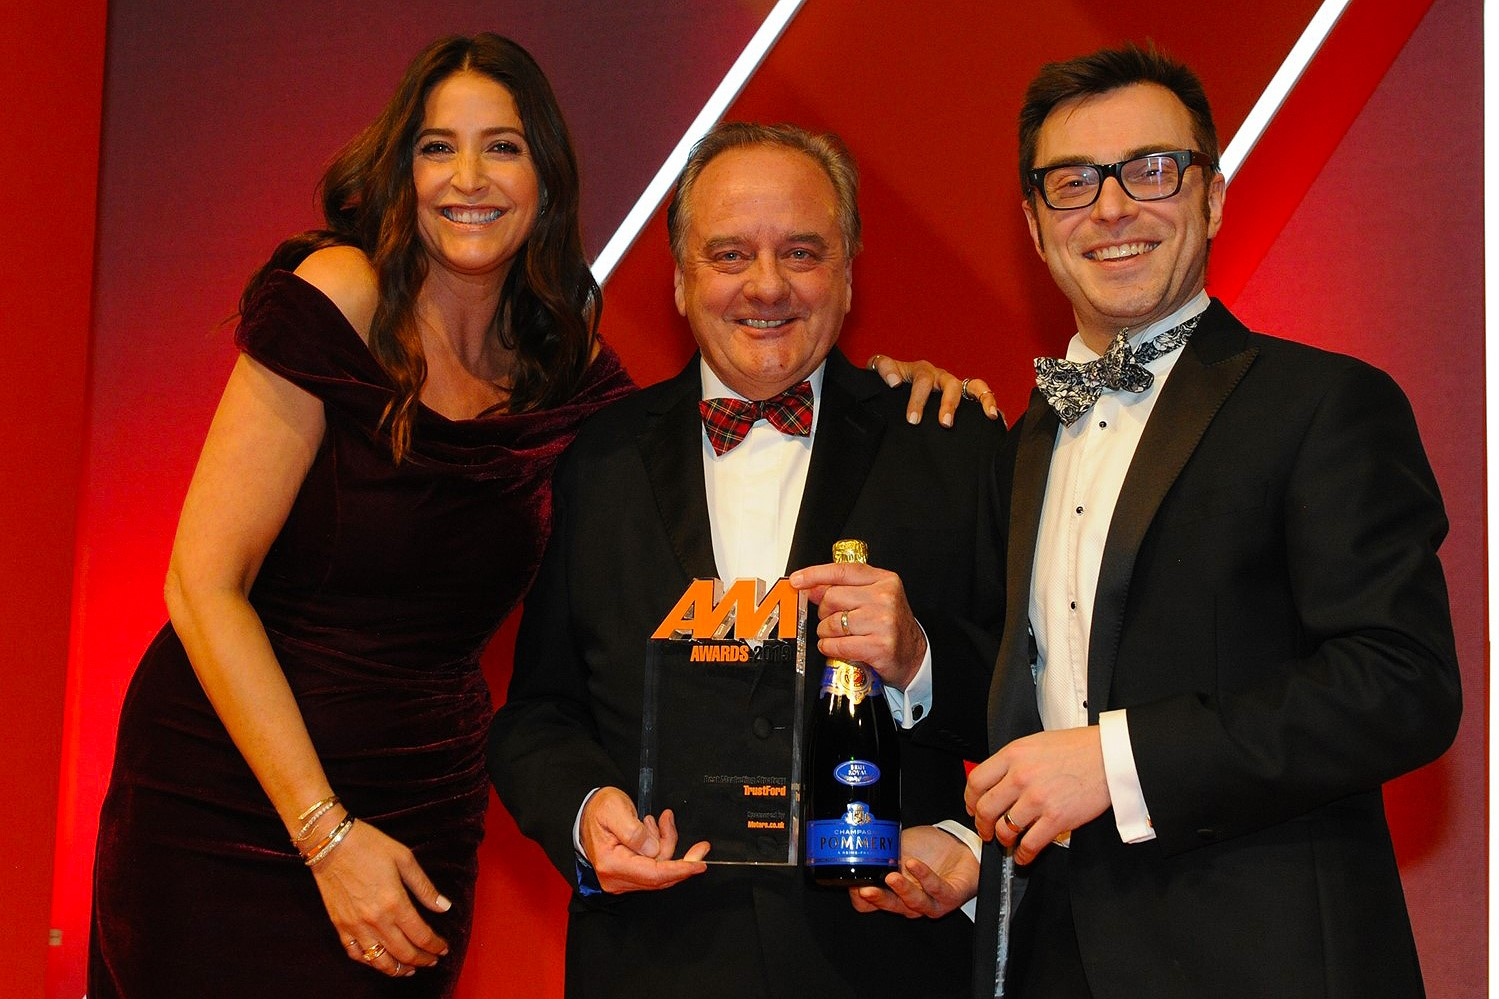 Stuart Foulds, chairman and chief executive,  TrustFord, accepts the award from Phill Jones,  managing director, Motors.co.uk, right, and host Lisa Snowdon left